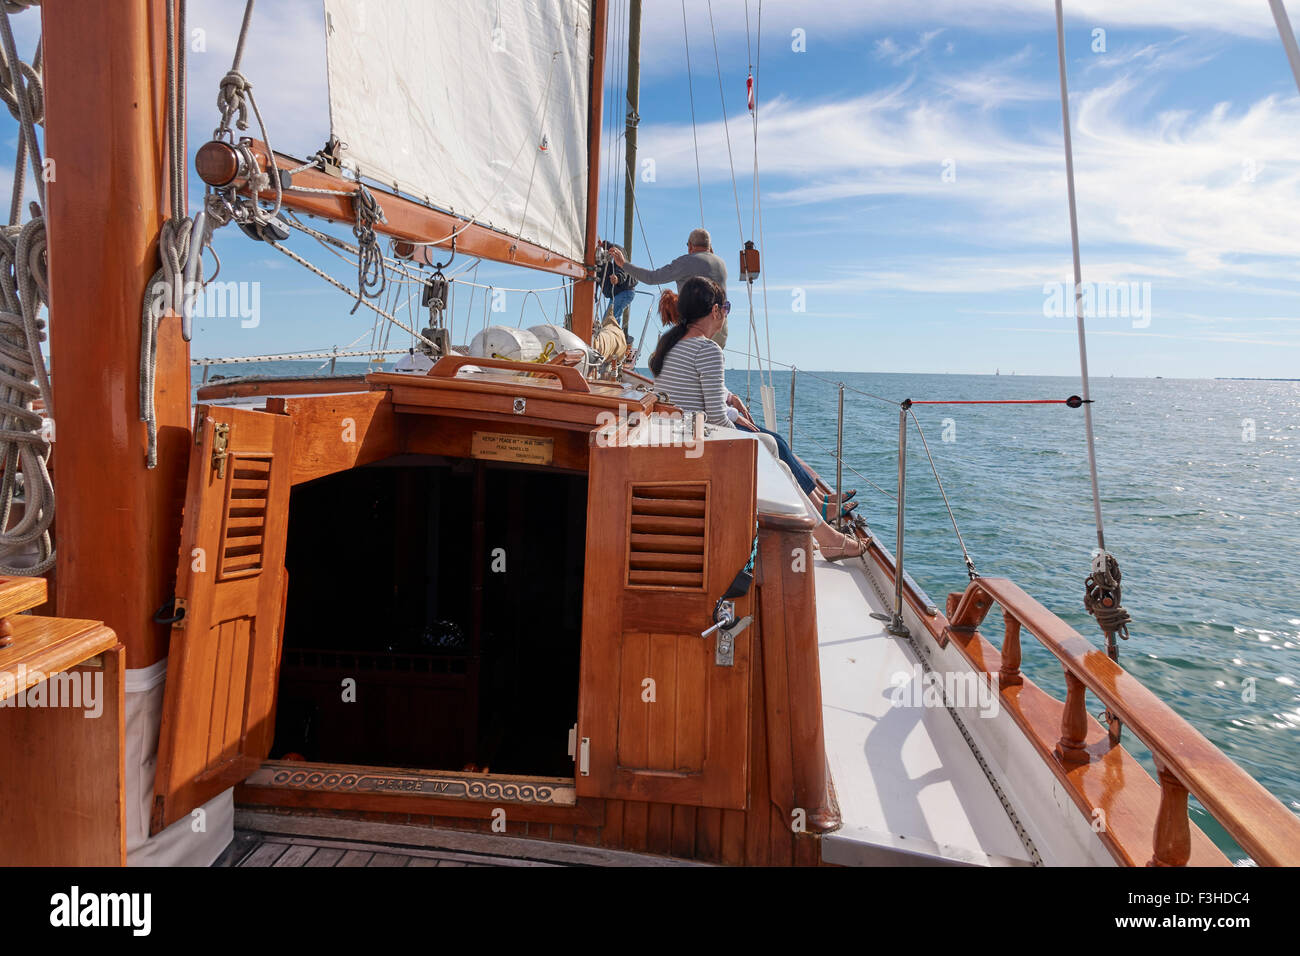 Sailing On Lake Ontario Canada In A Formosa Ketch Made From Teak Wood - Stock Image